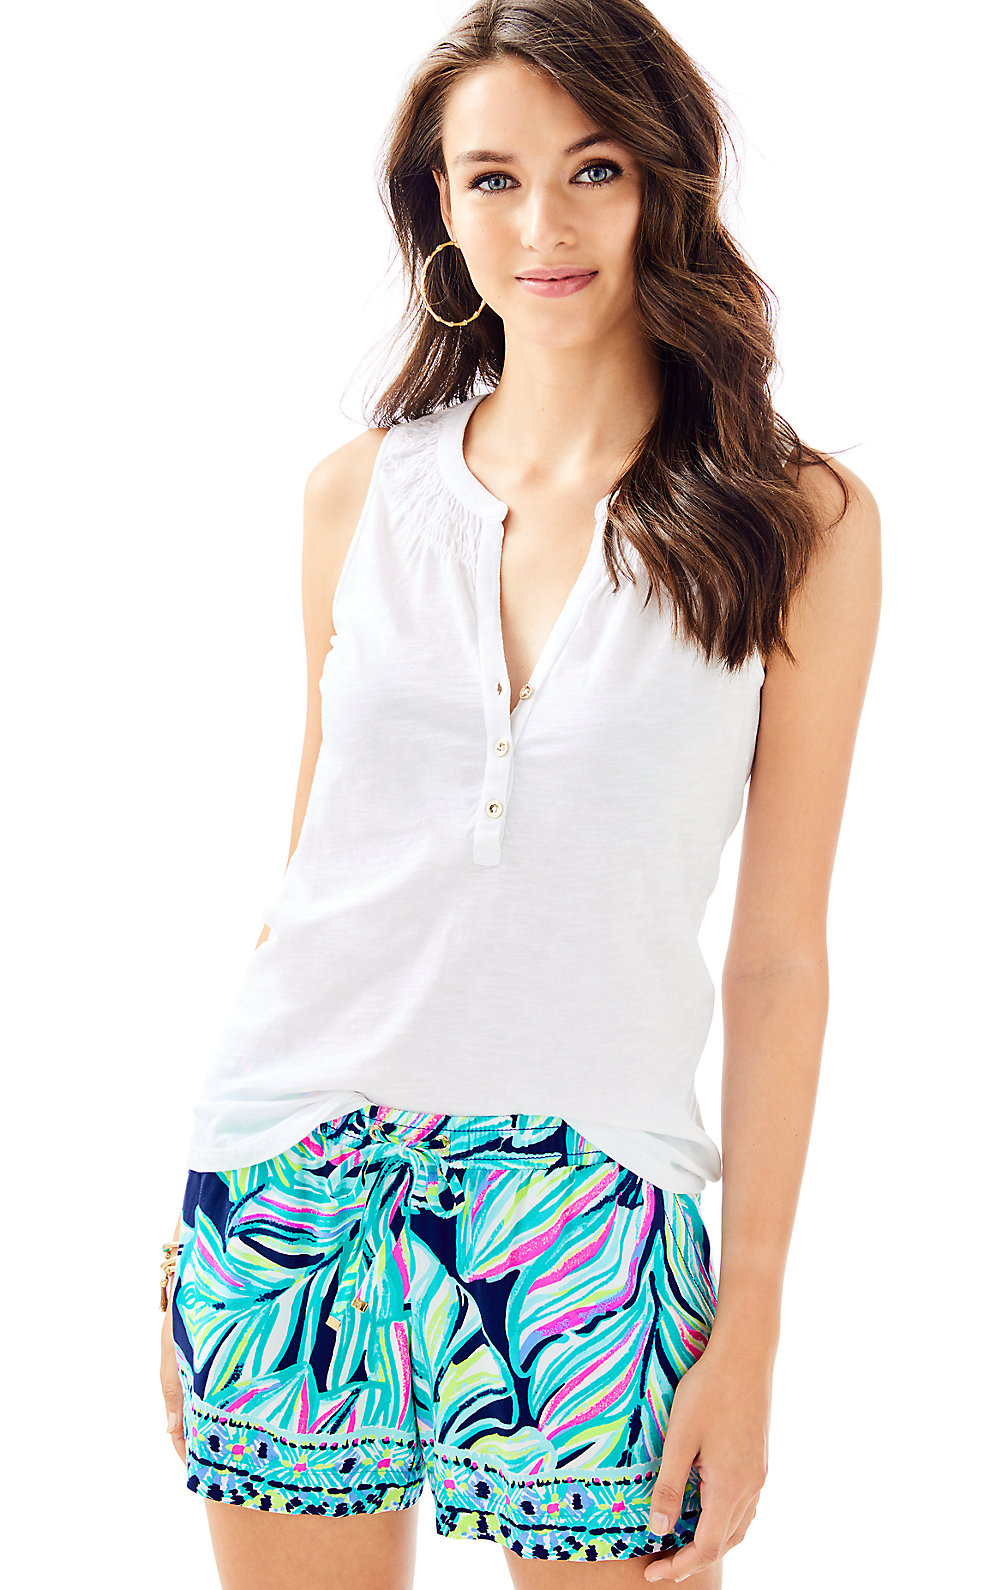 Womens Sleeveless Essie Top in Resort White from Lilly Pulitzer